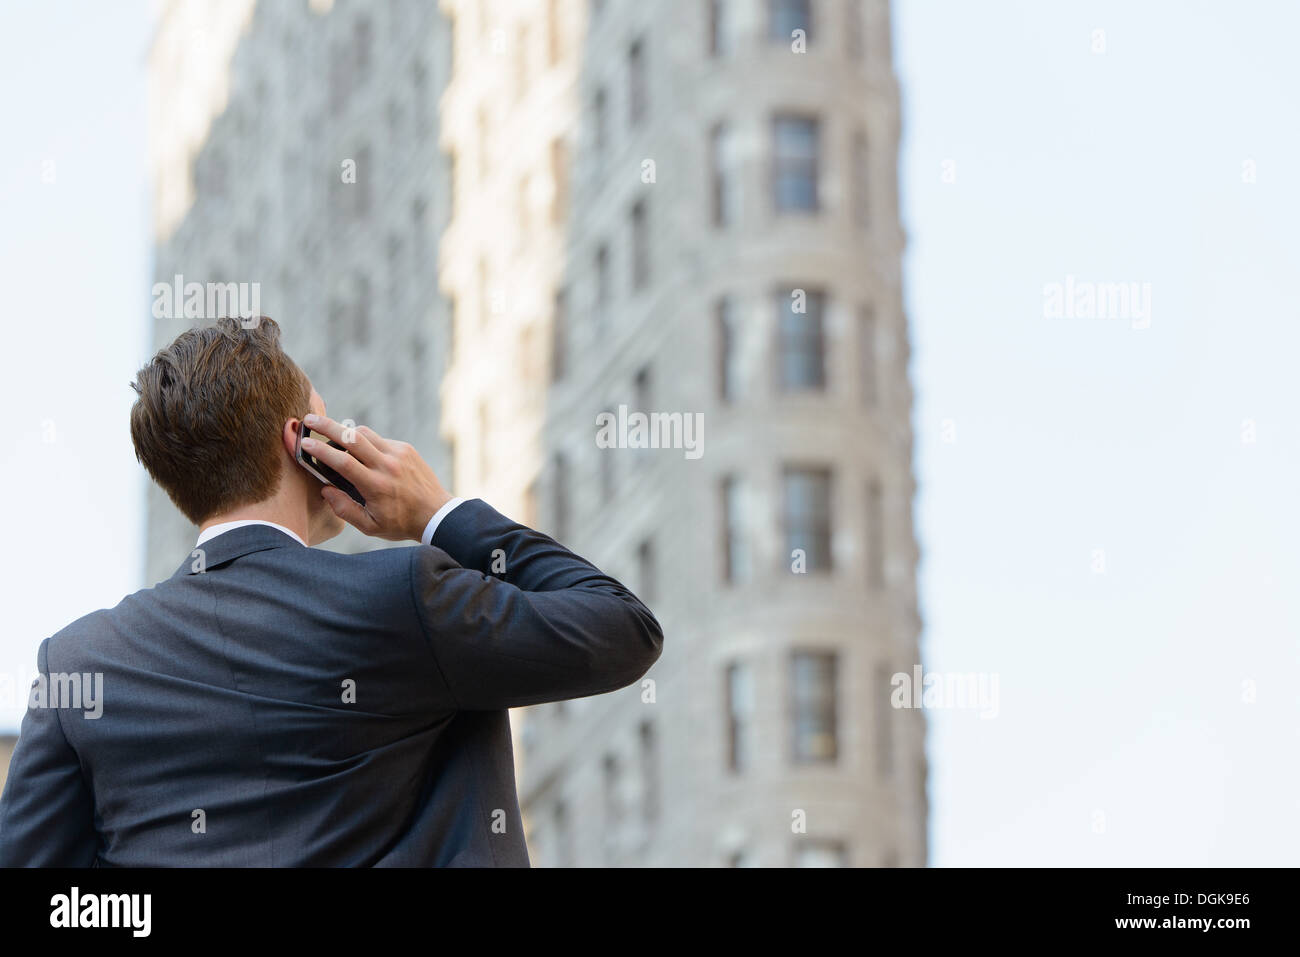 Backview of businessman on mobile phone - Stock Image